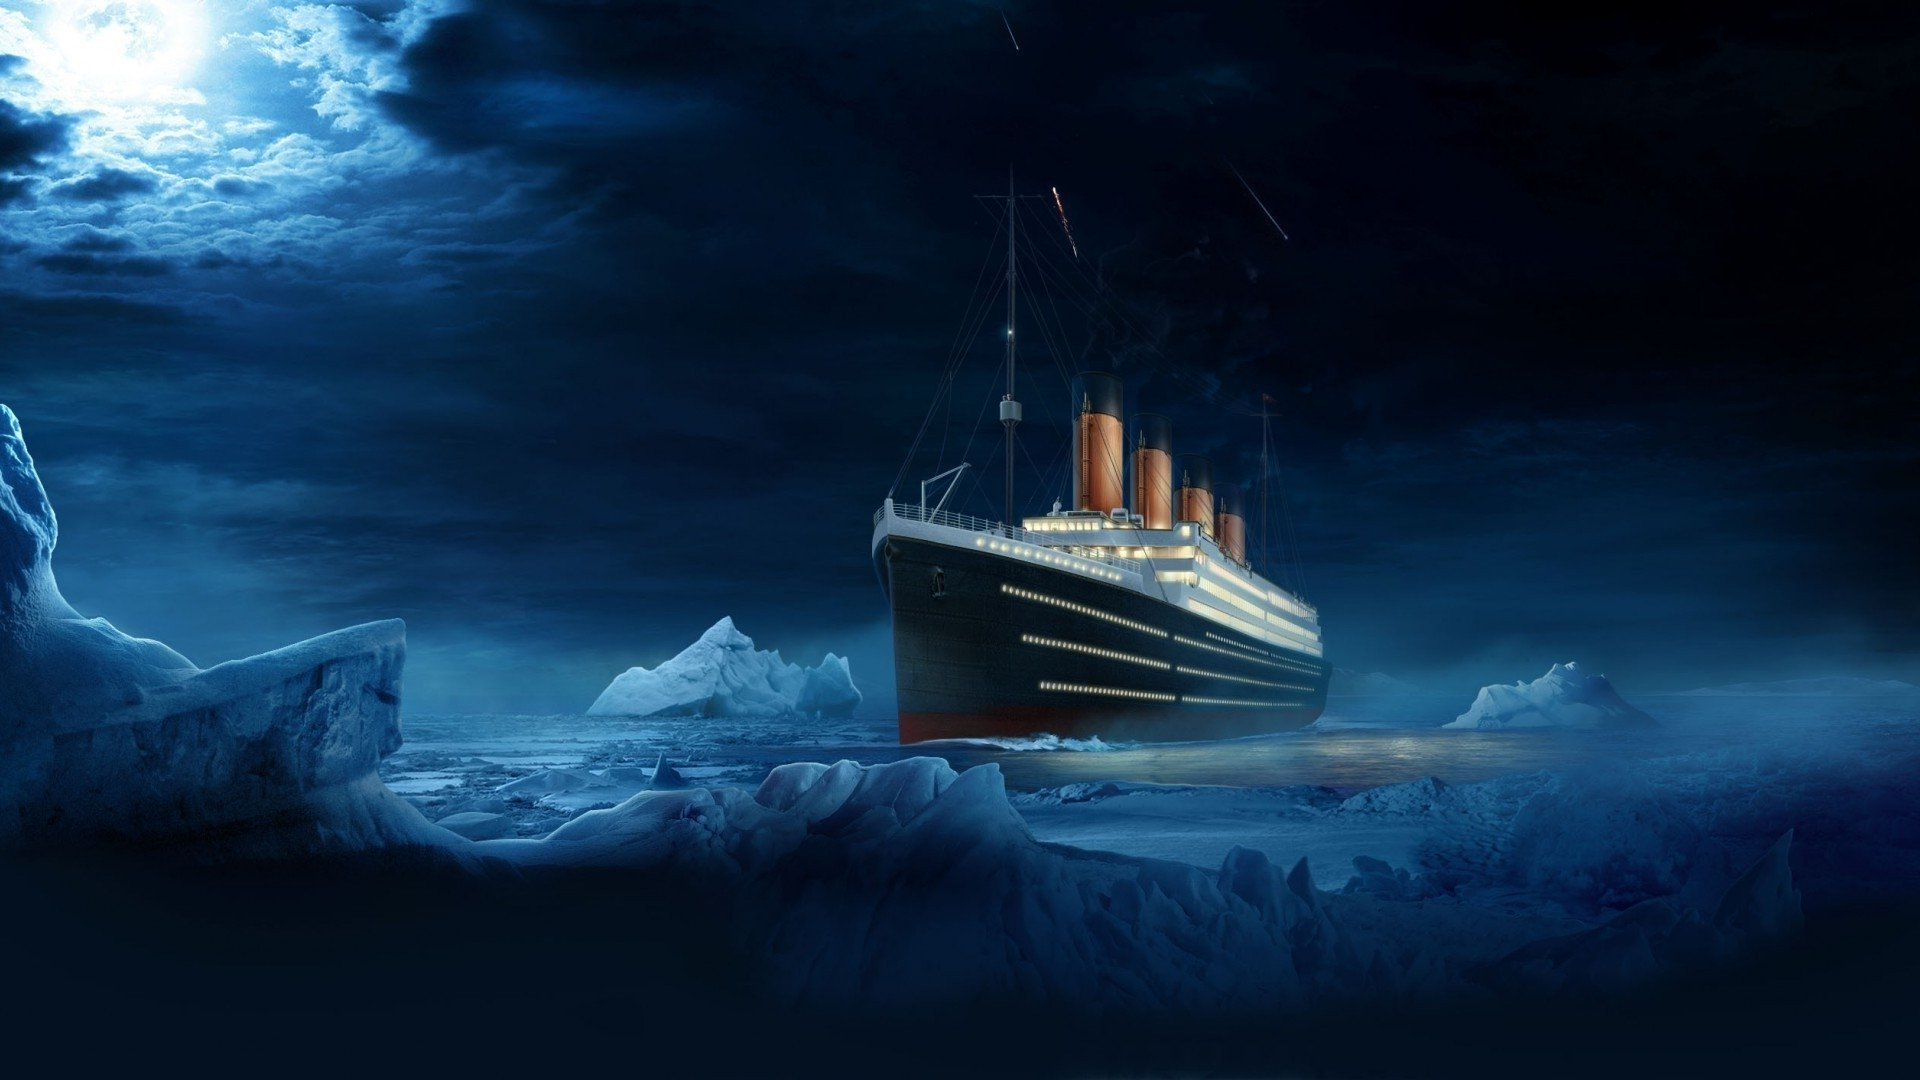 Titanic Wallpaper Desktop